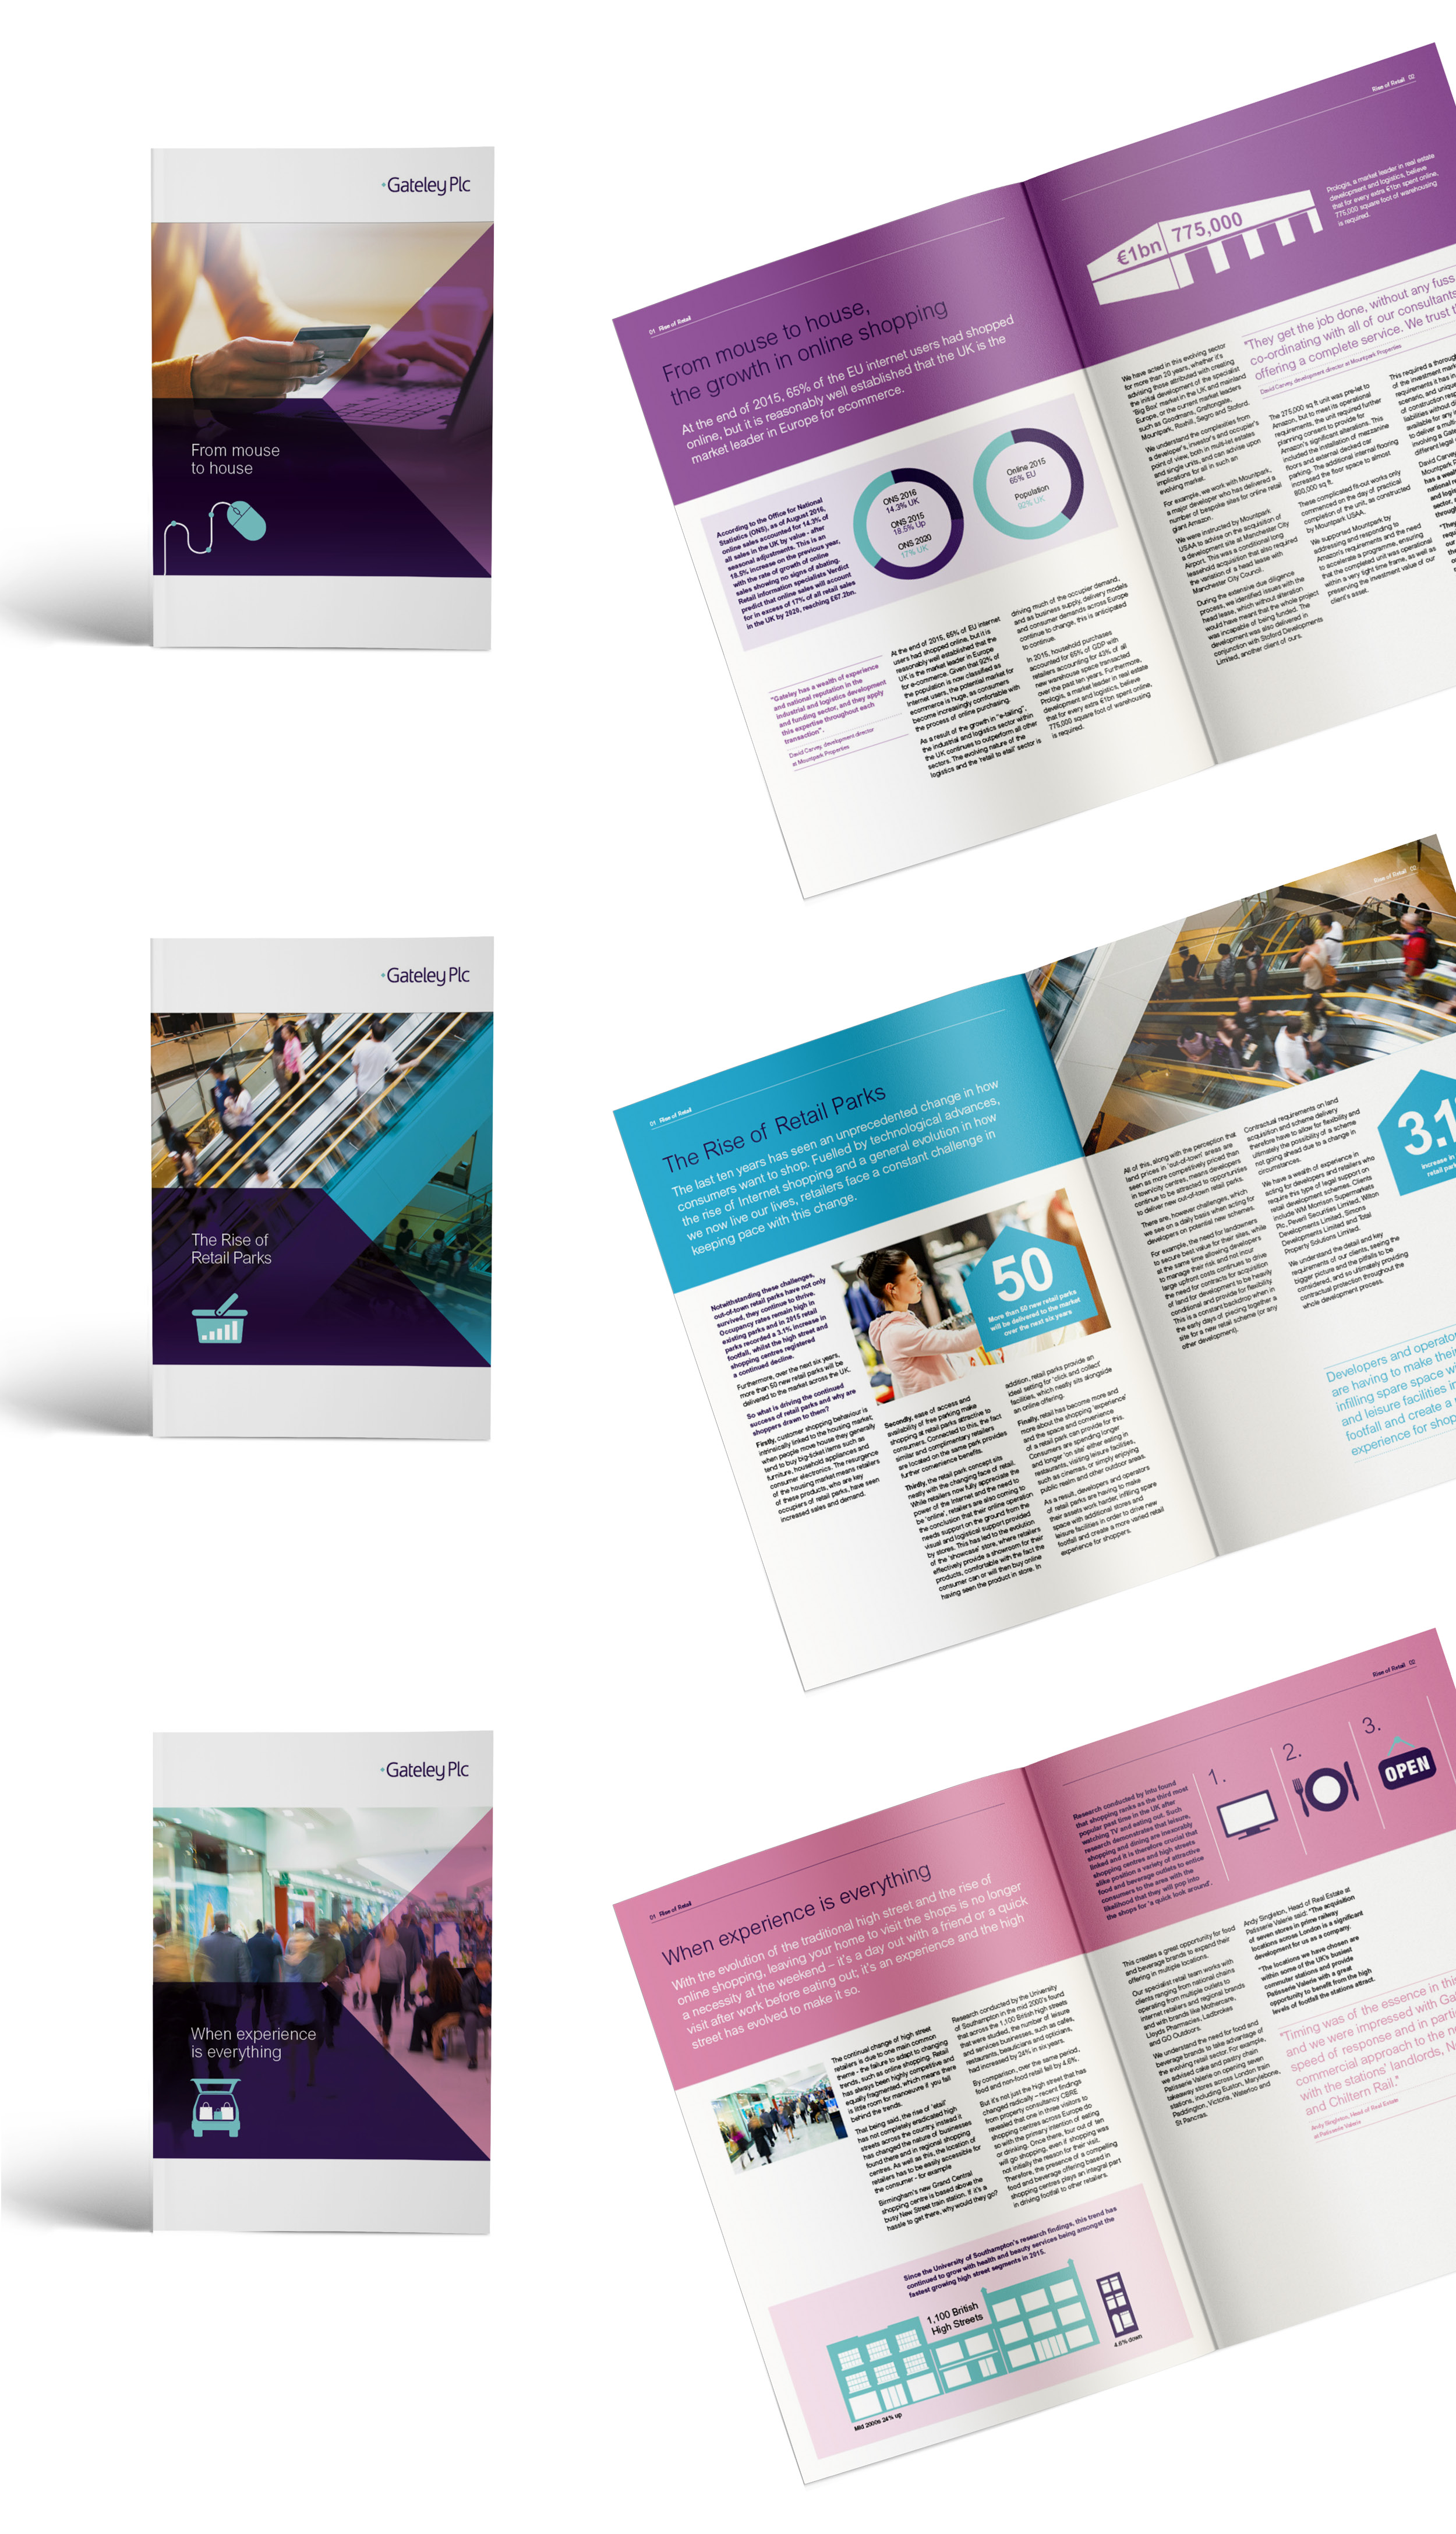 Gateley Plc - Brochure Design Example